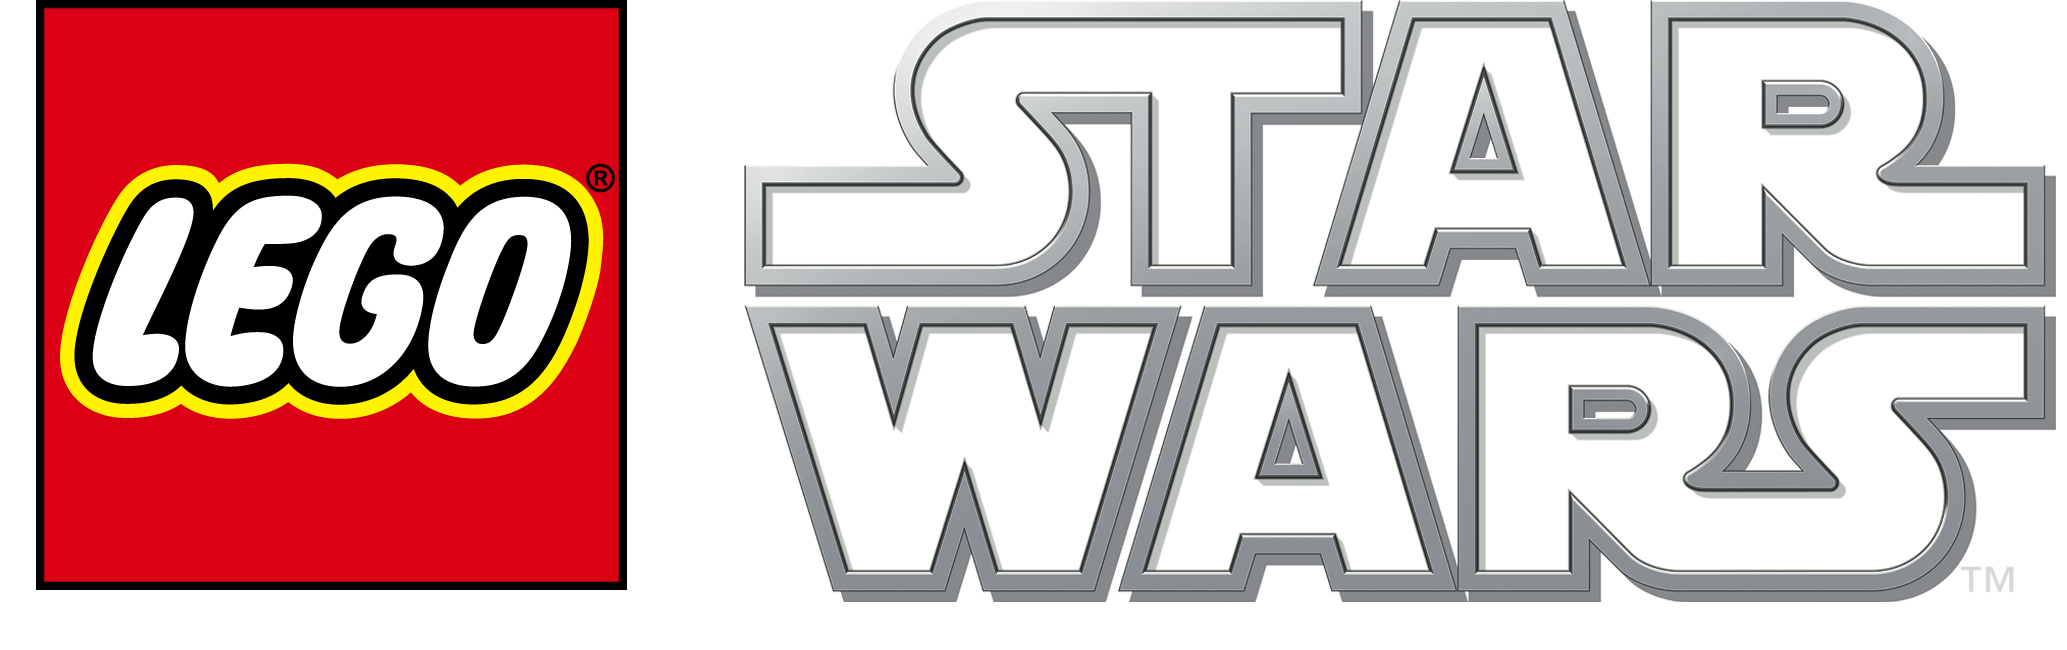 Lego star wars logo clipart clip free LEGO Stars Wars sets to release in 2016 | Nothing But Geek clip free